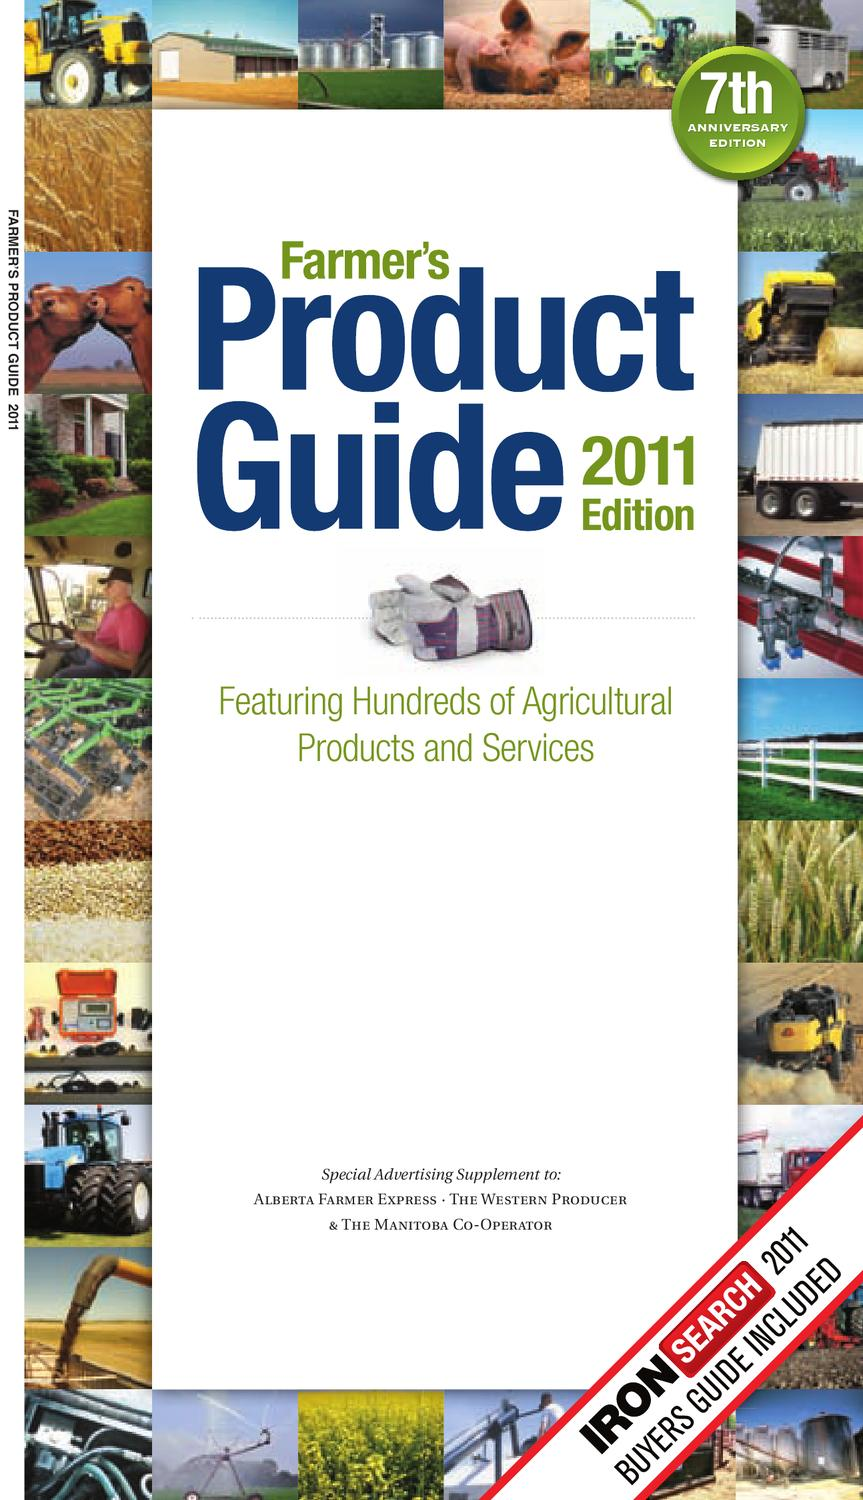 Farmer's Product Guide 2011 Edition by Farm Business